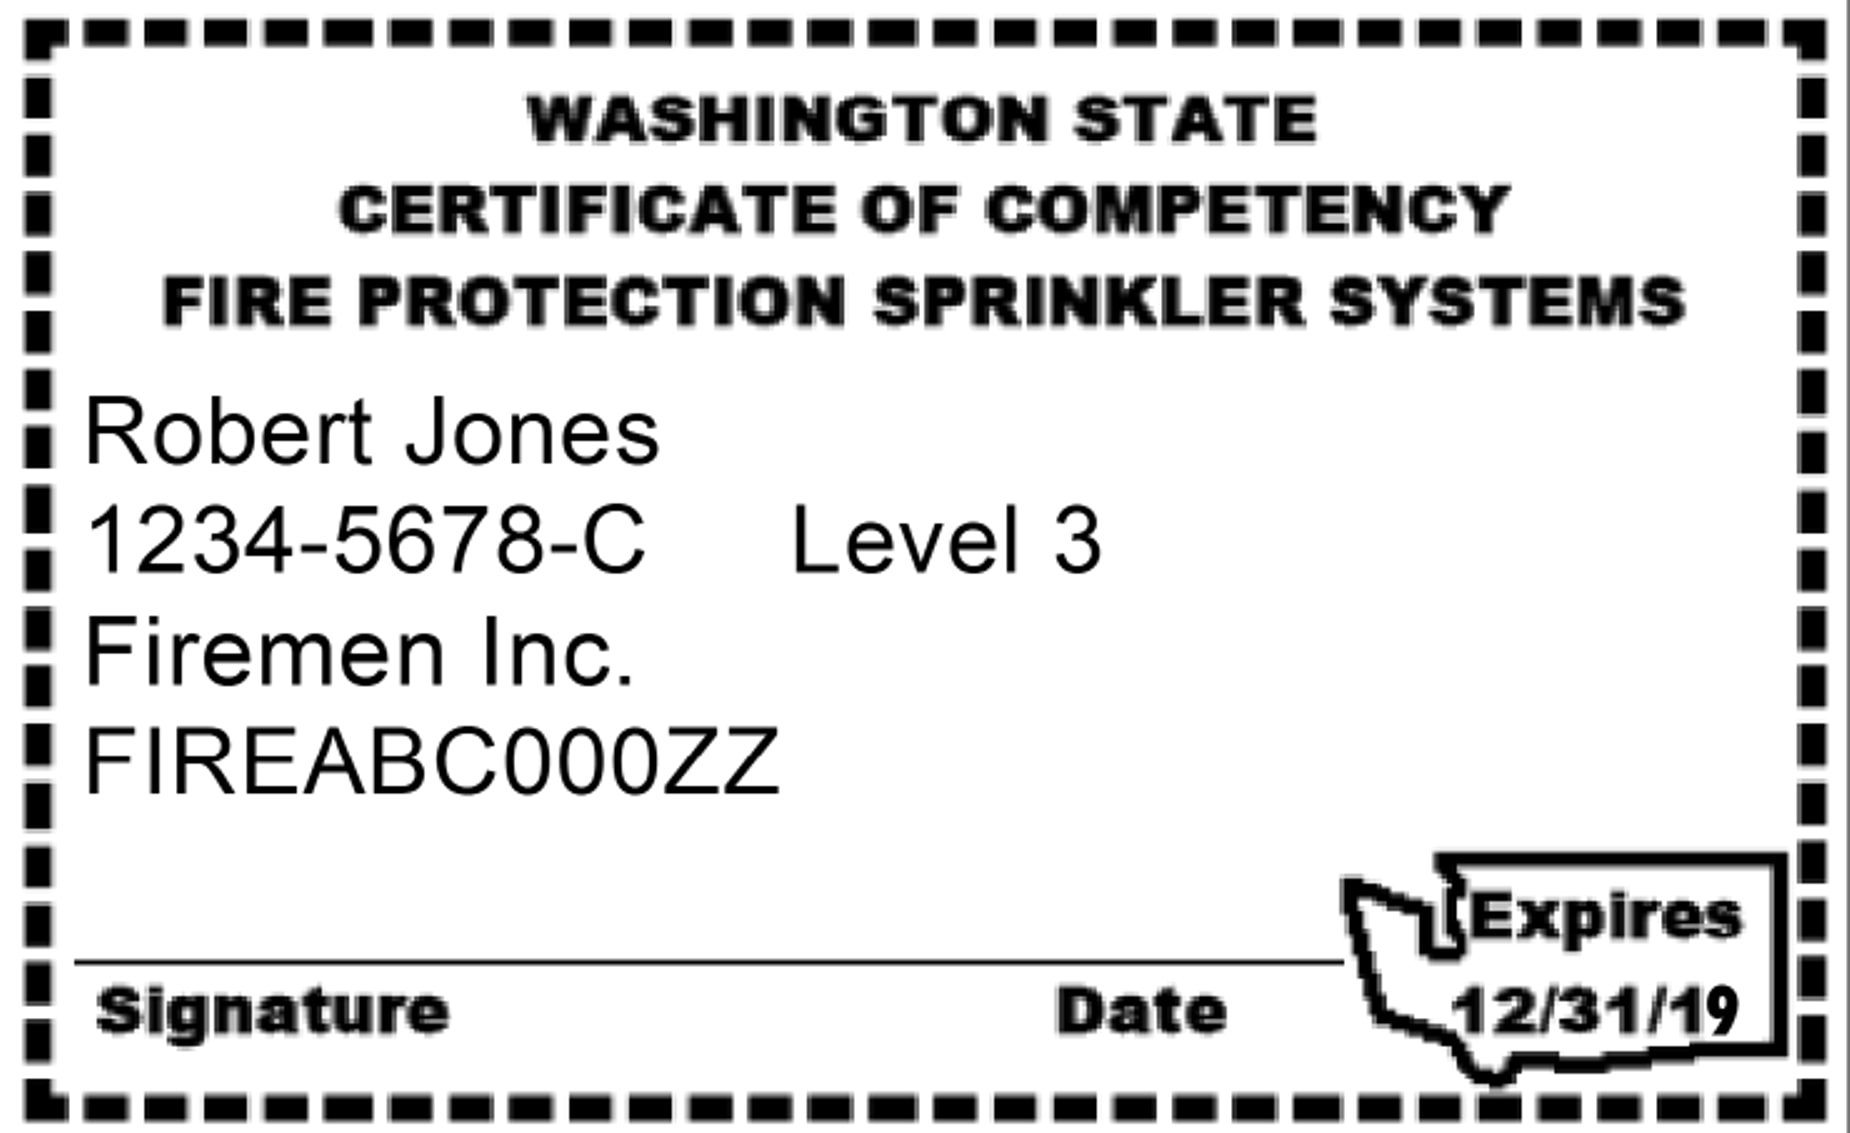 Washington_Certificate_of_Competency_Stamp